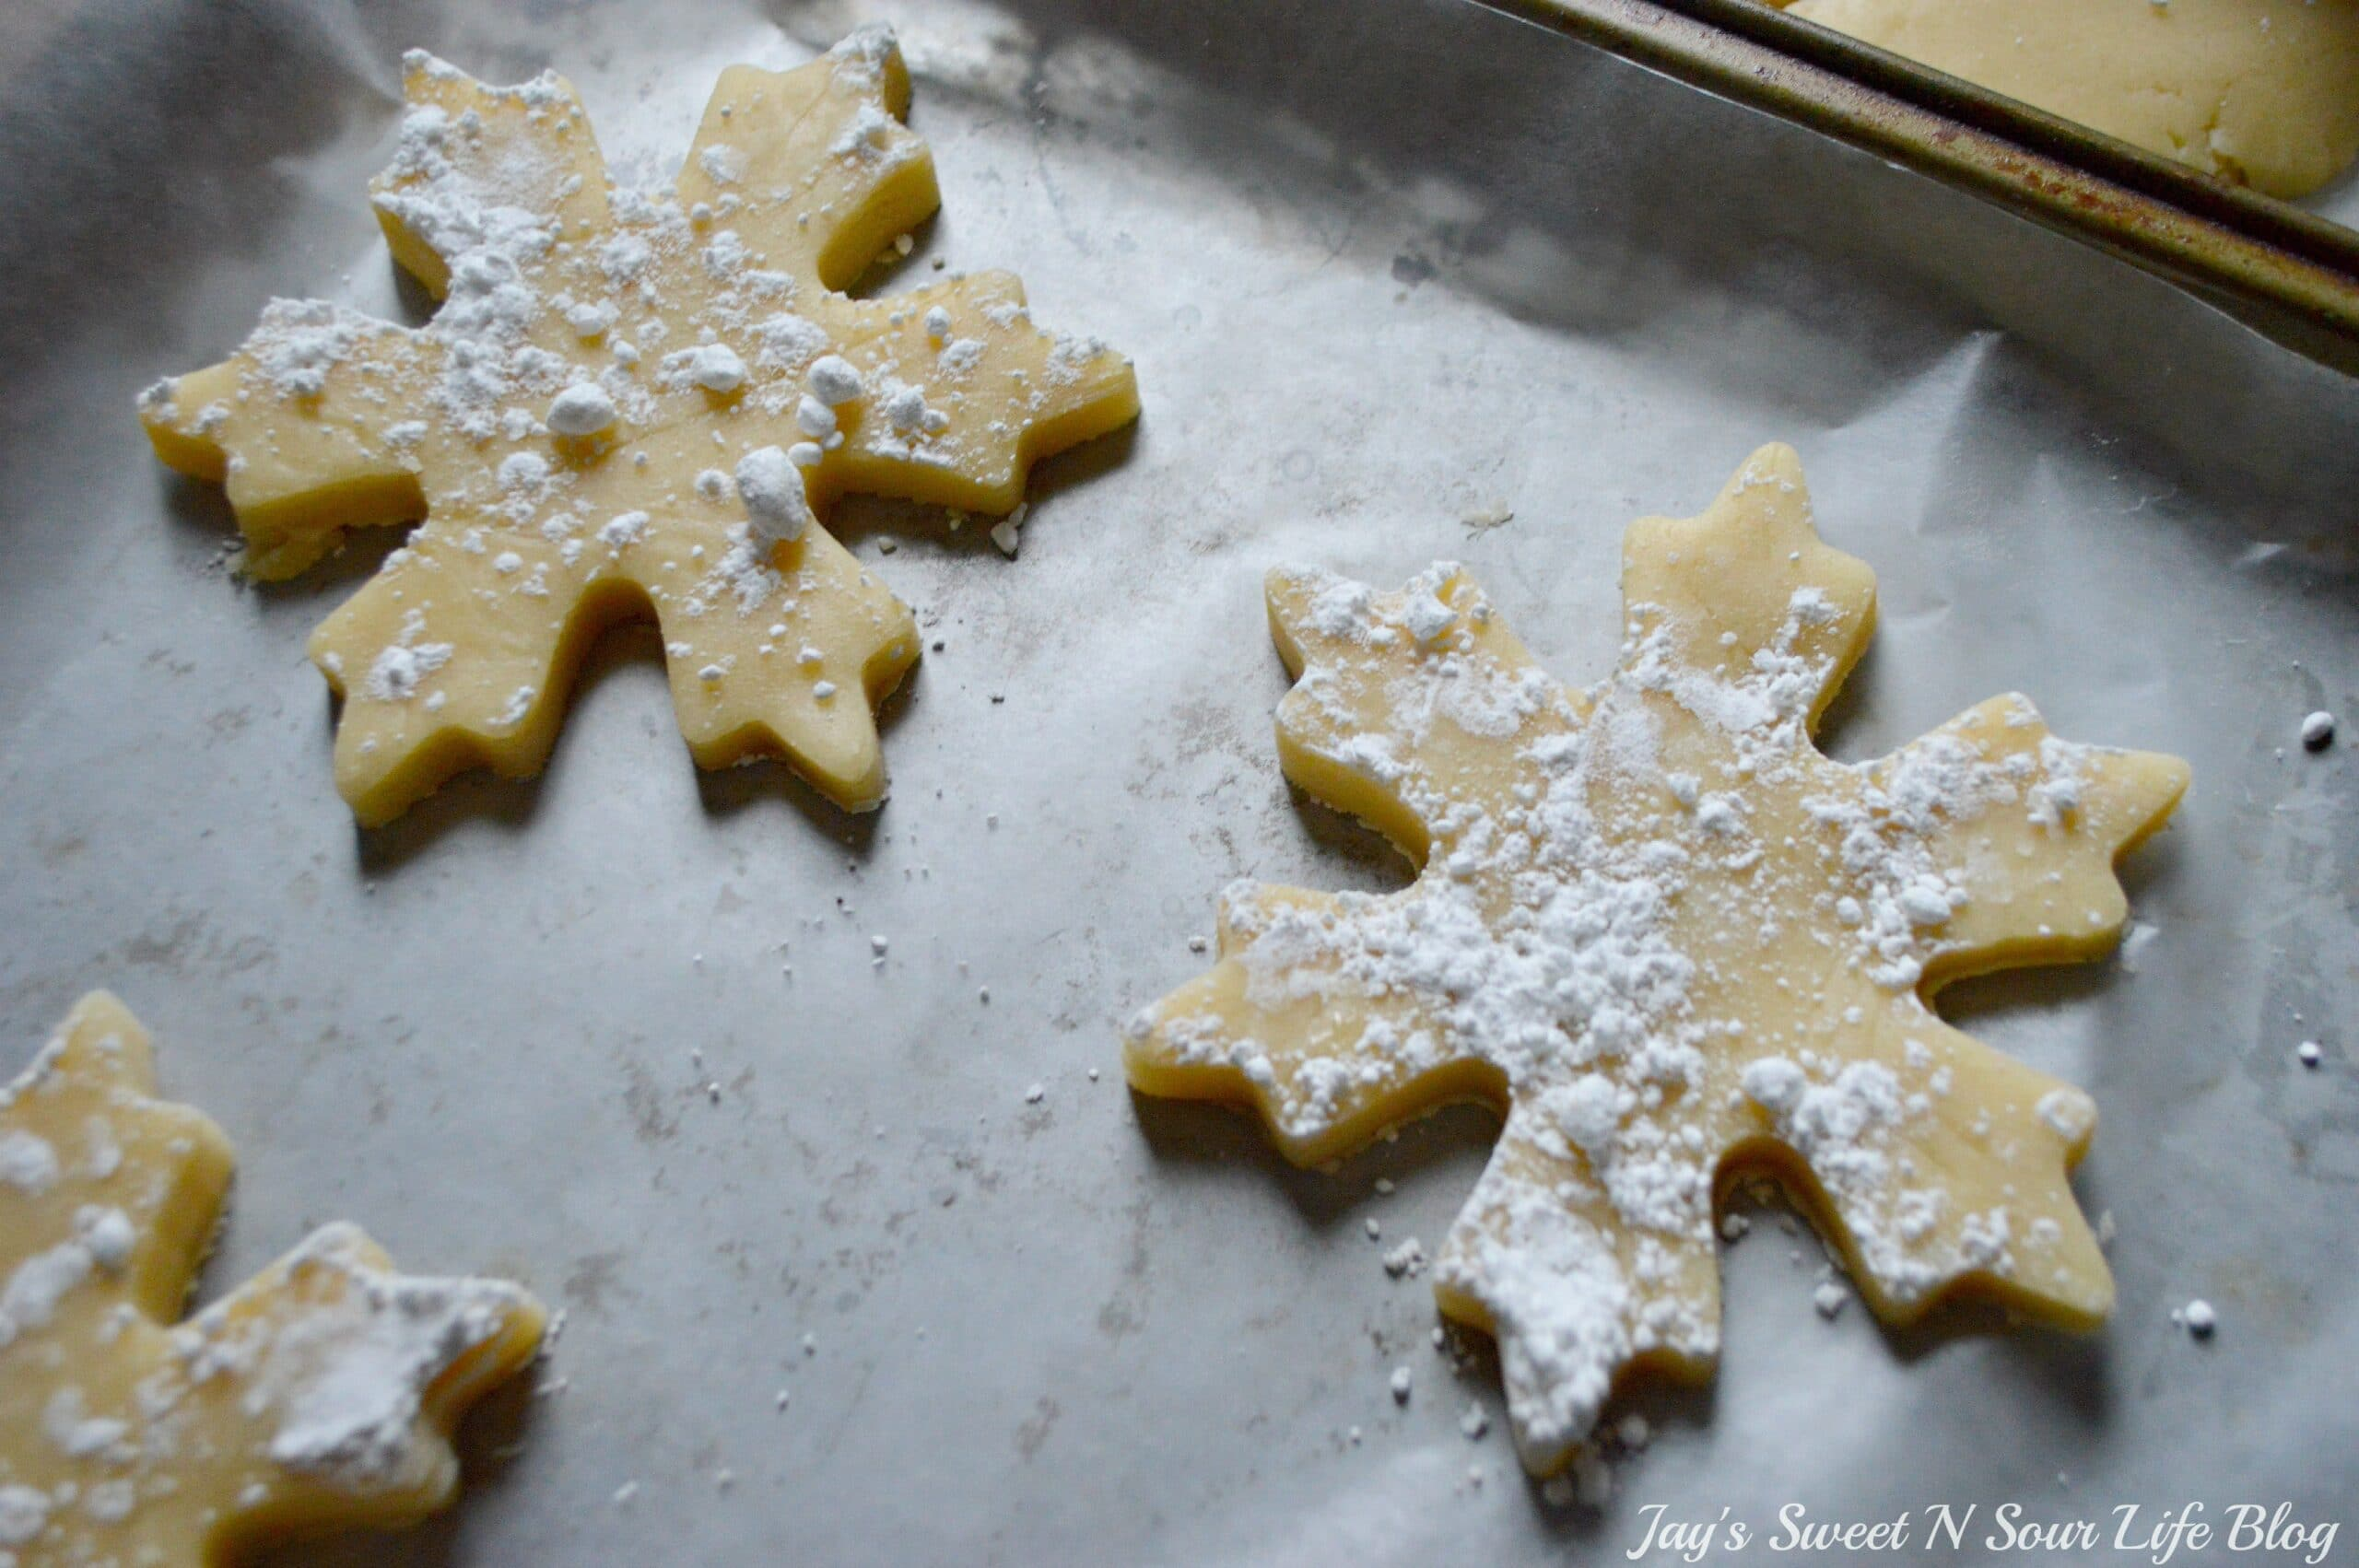 Santas milk and cookies latte Step 16. Treat Santa to his very own Santa's Milk and Cookies Latte, paired with a buttery snowflake cookie perfect for dipping. No milk frother needed, this delicious sugar cookie flavored latte and snowflake cookies make the perfect holiday treat duo.